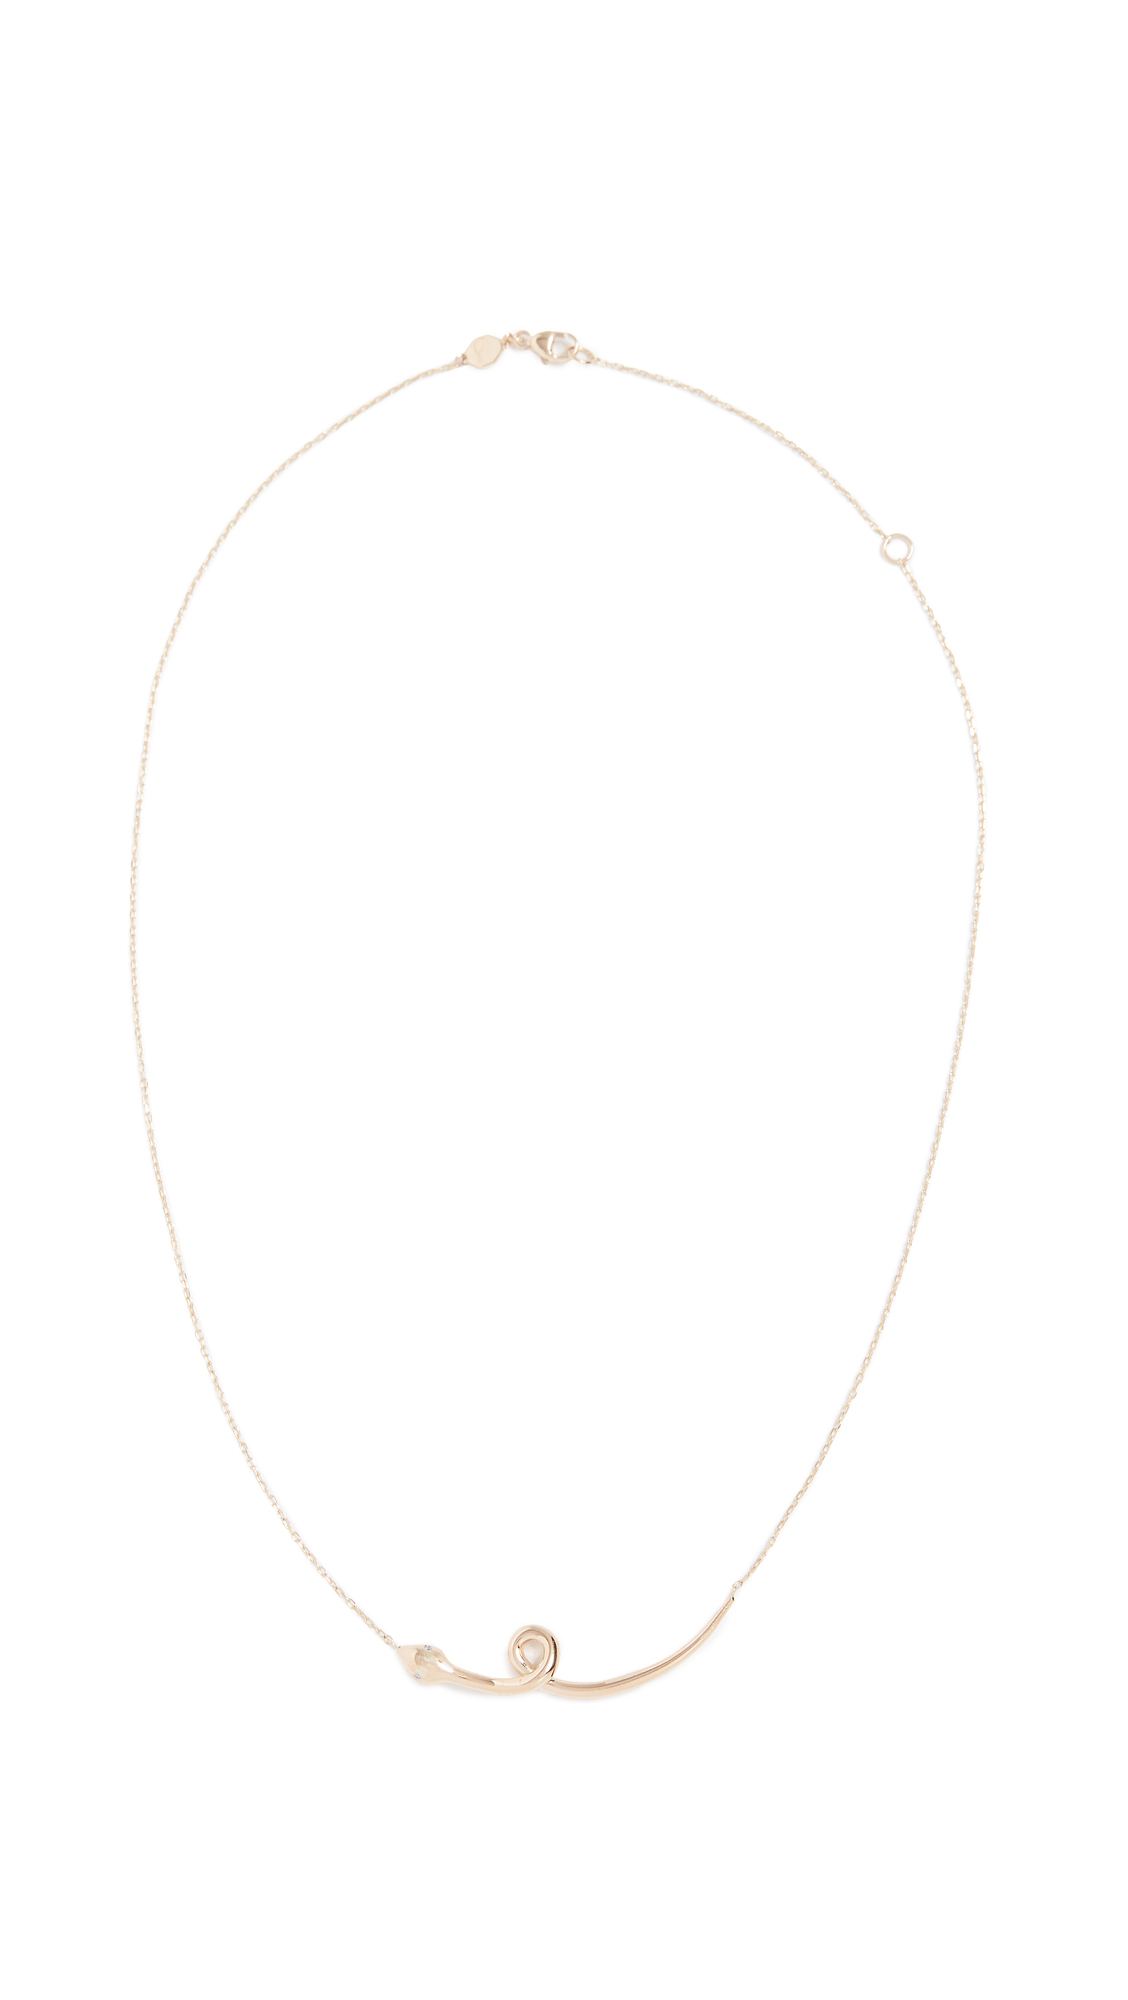 SORELLINA 18K GOLD SNAKE NECKLACE